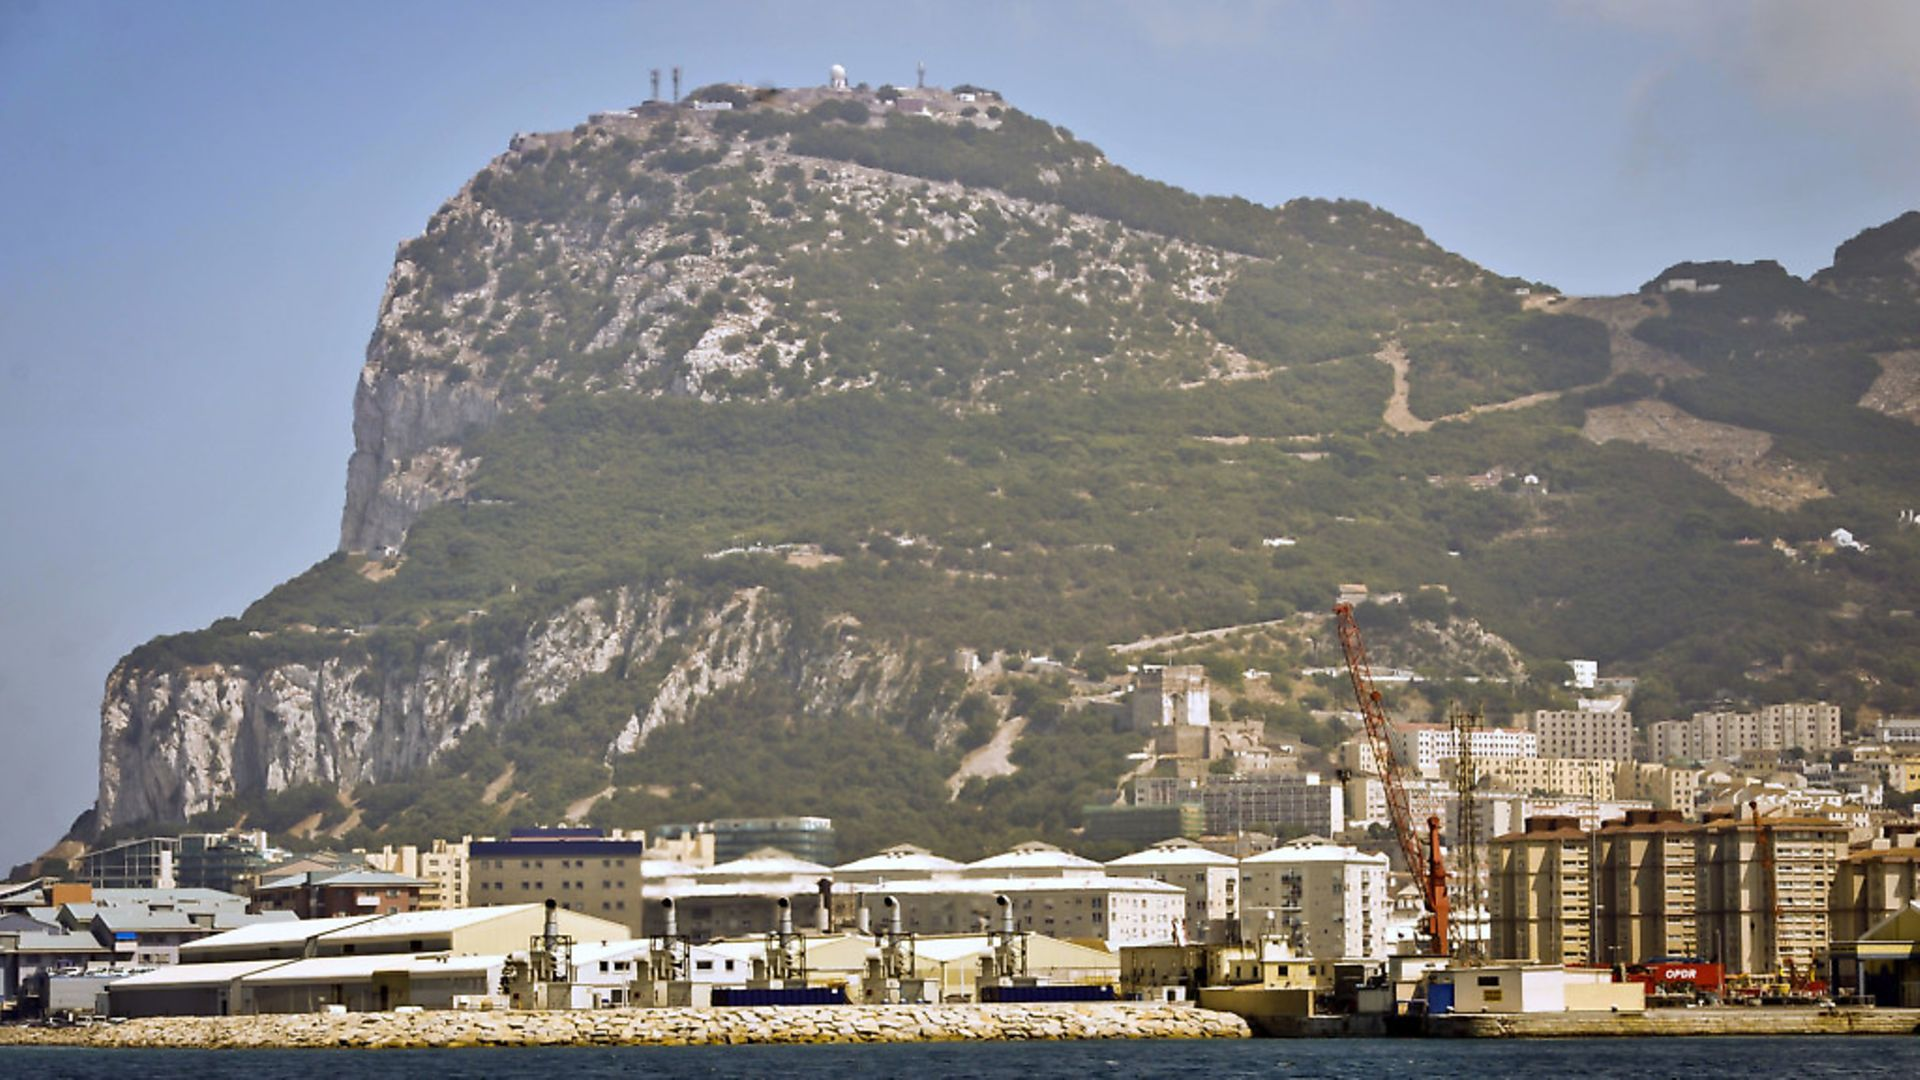 Tthe Rock of Gibraltar as seen from the sea. Photo: Ben Birchall / PA - Credit: PA Archive/PA Images